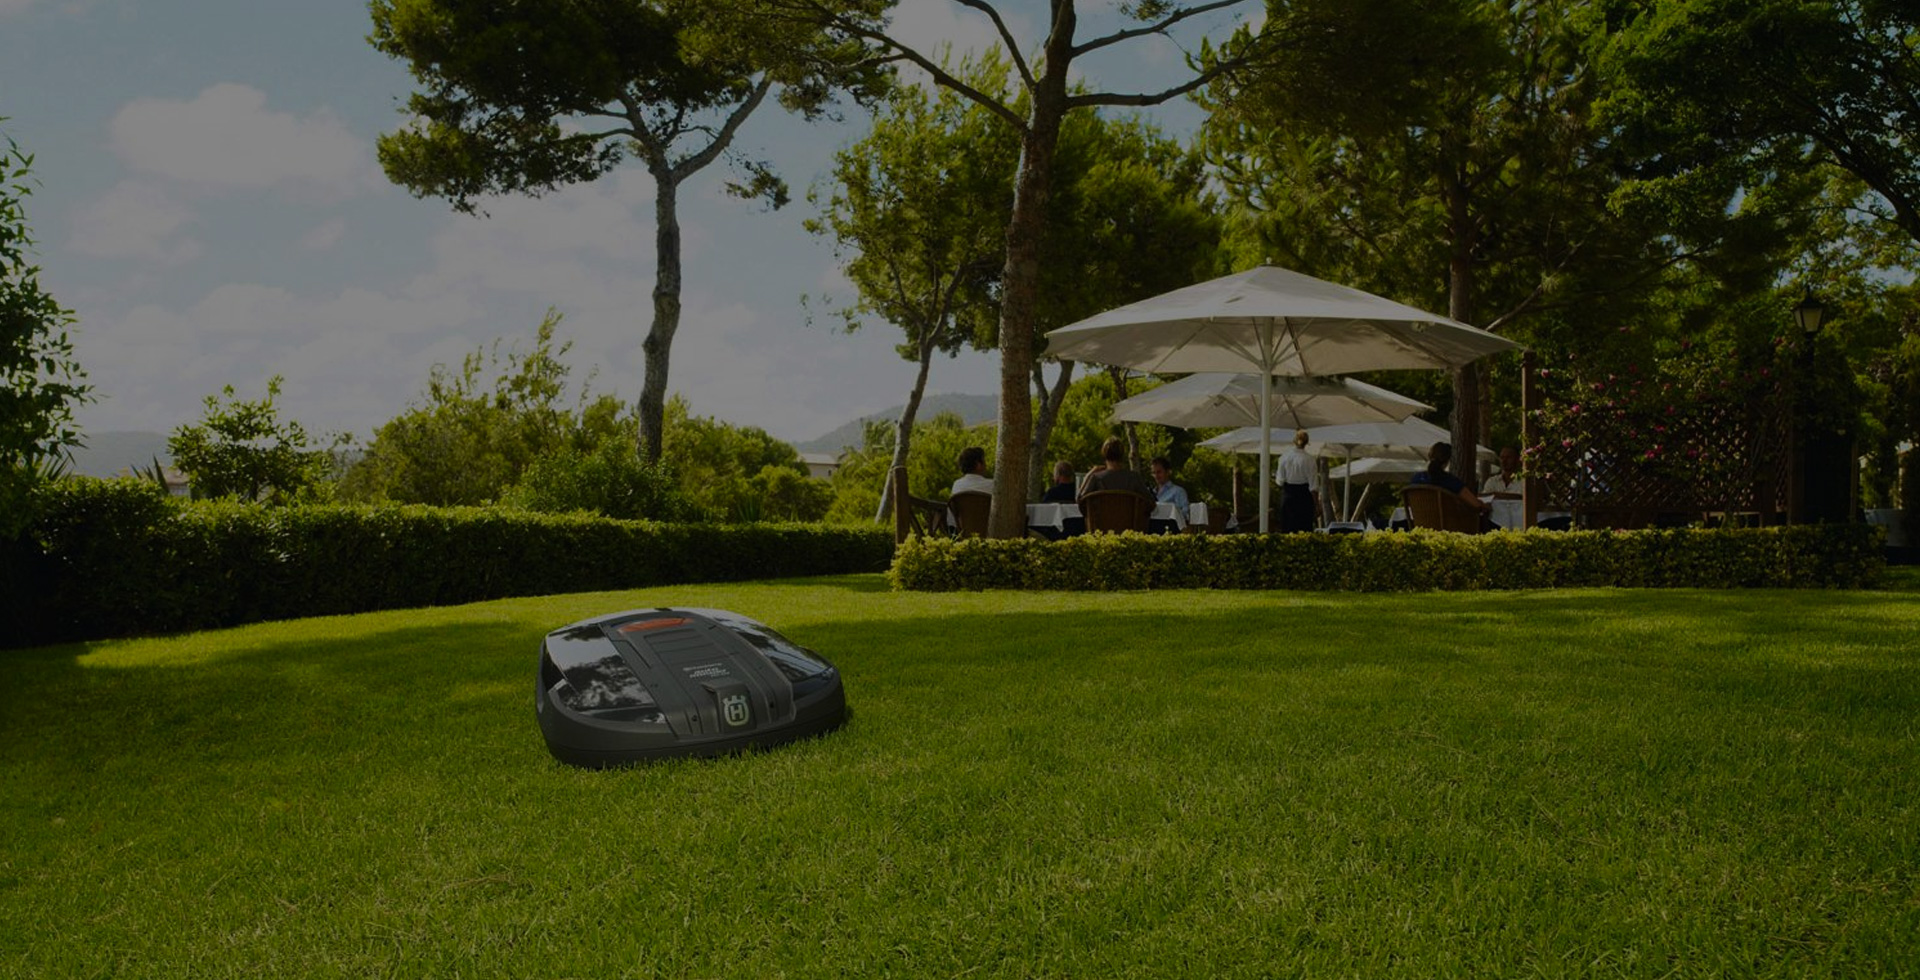 LET A ROBOTIC MOWER